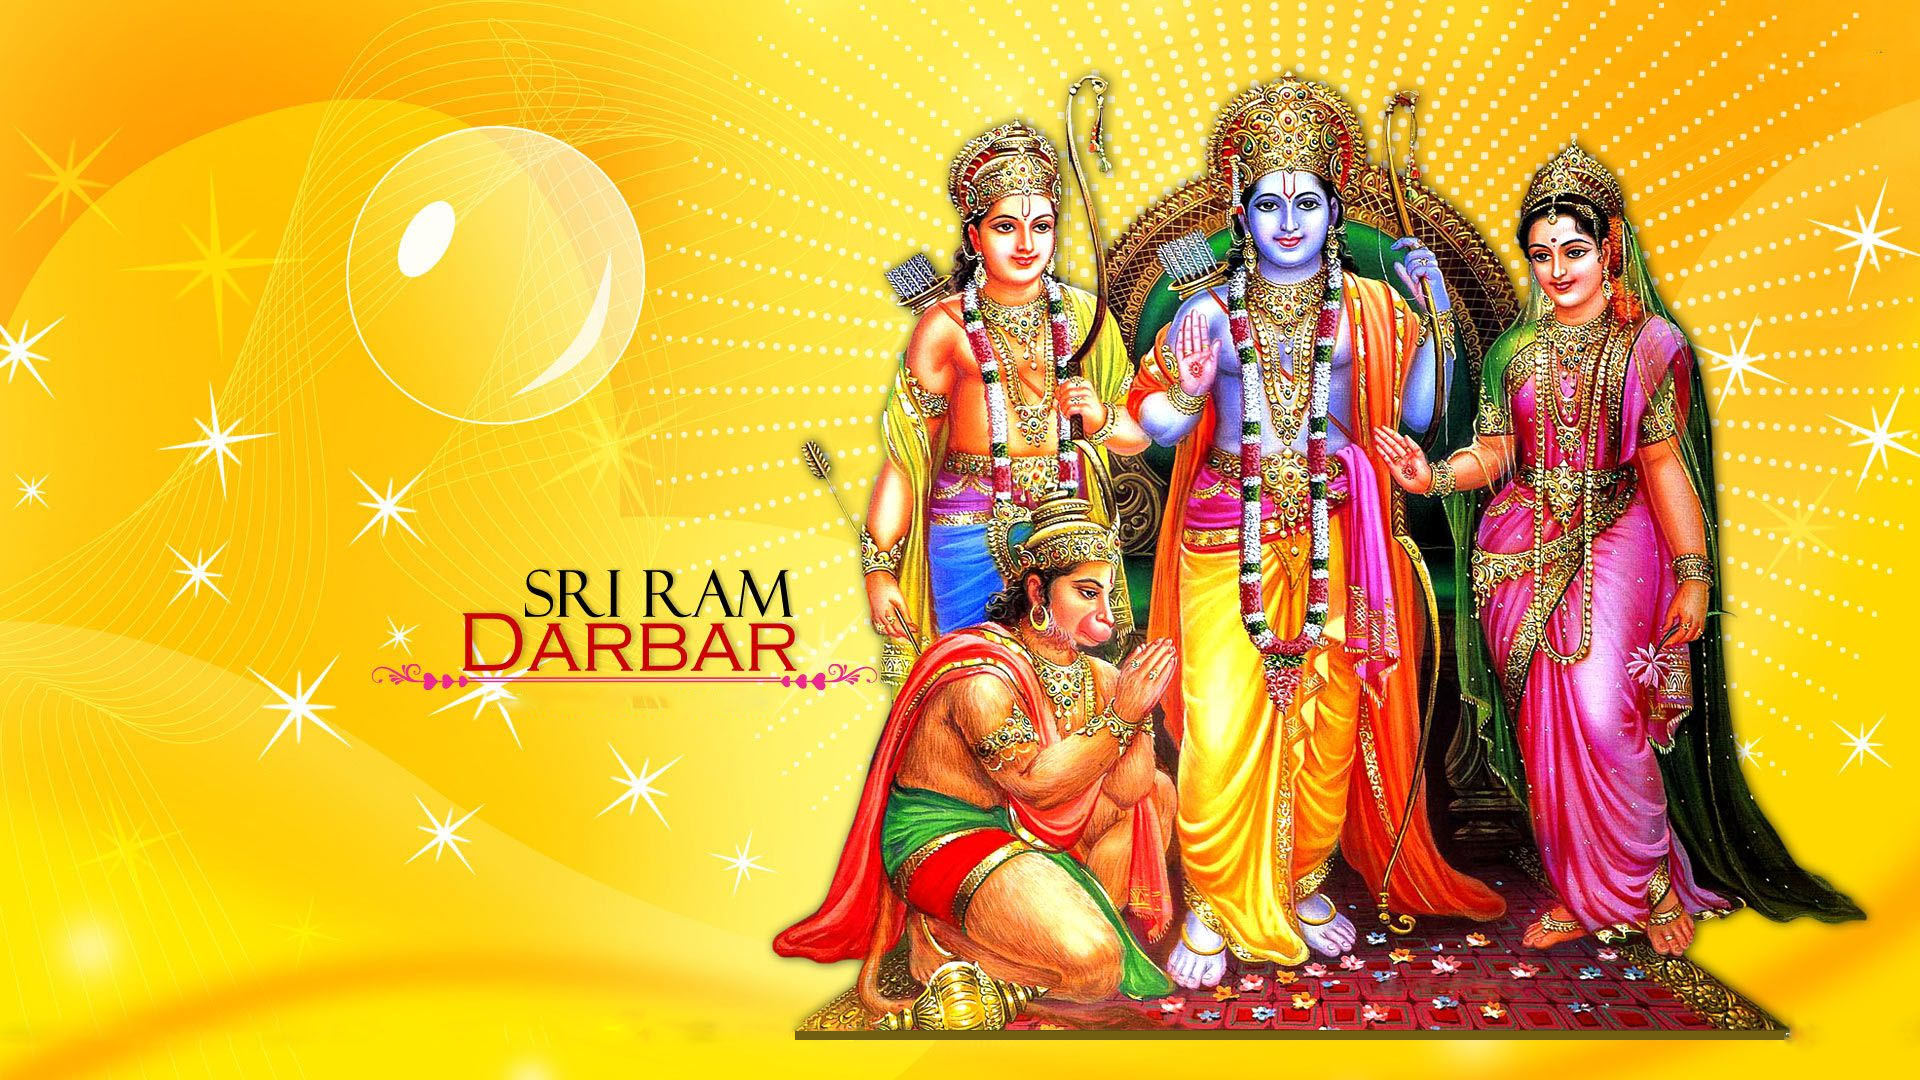 Ram Darbar Wallpaper Full Size Hd